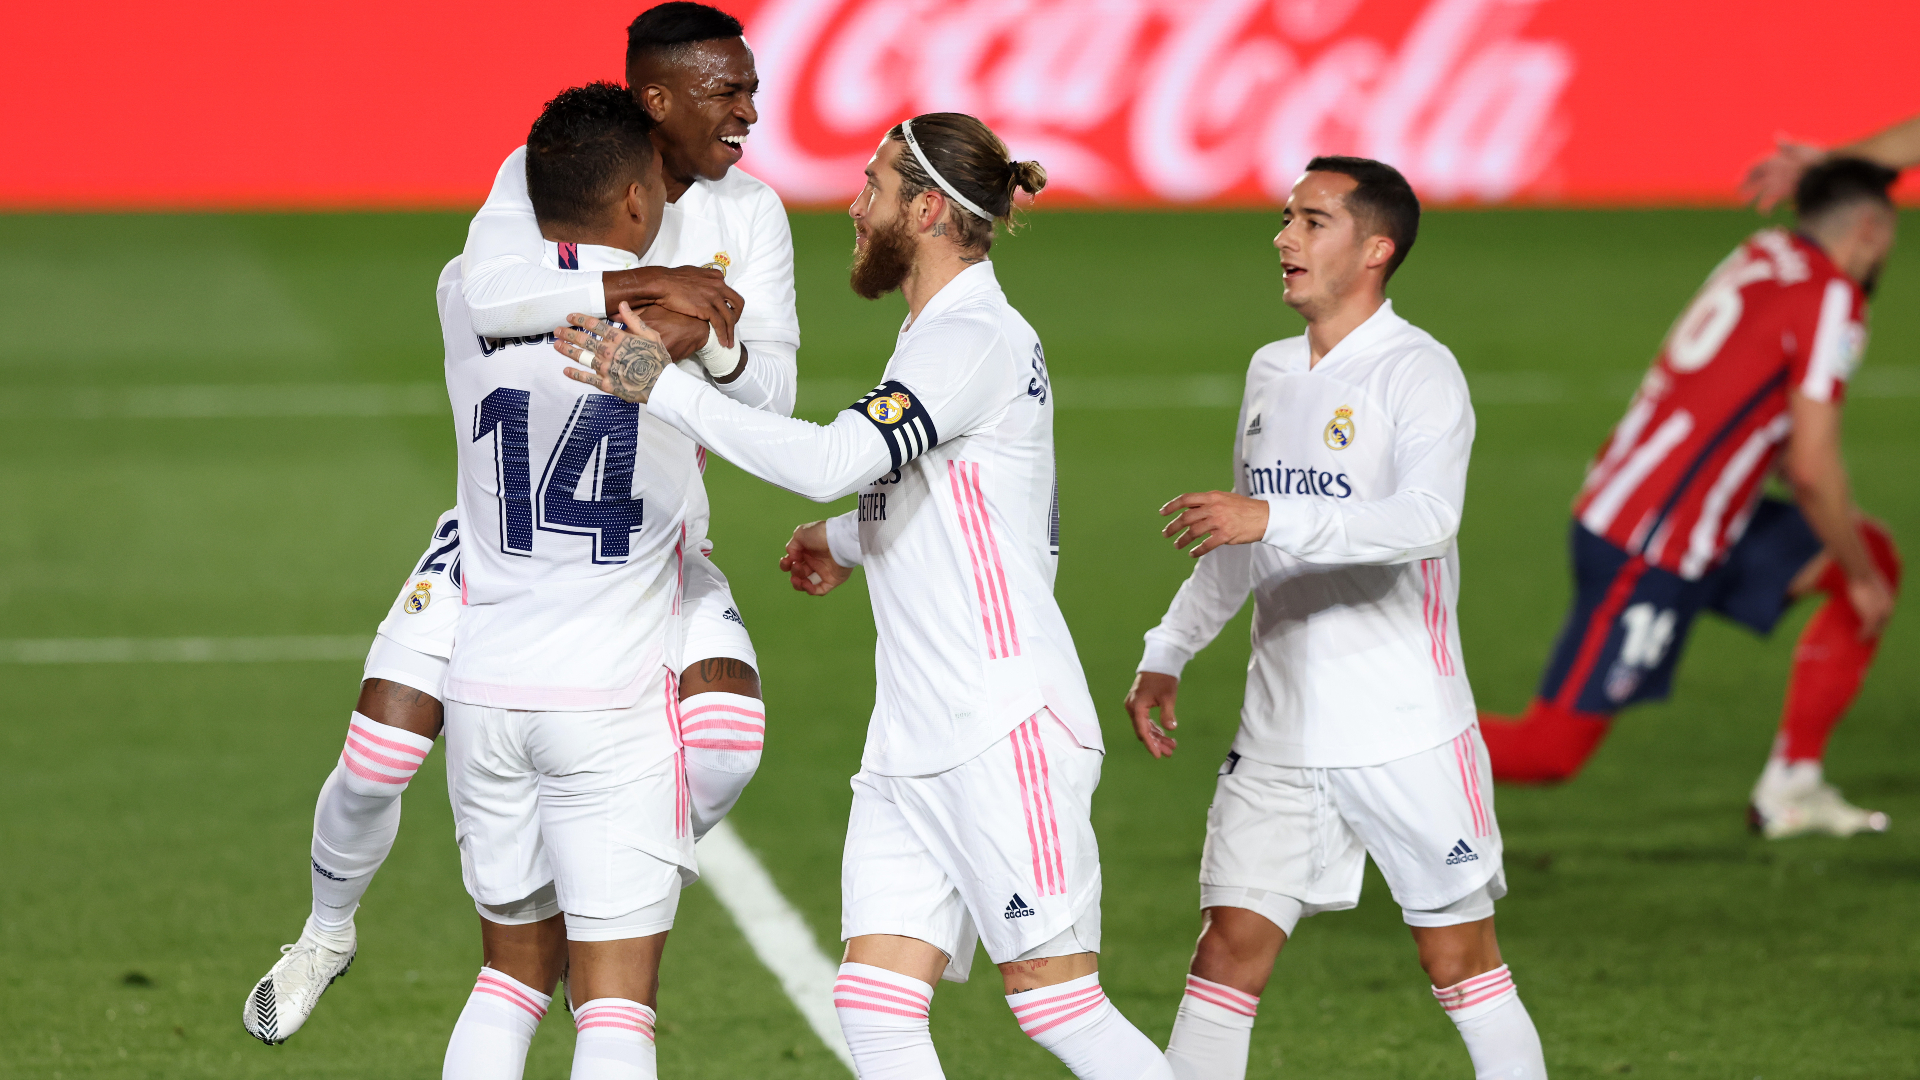 Eibar vs real madrid betting preview hkjc football betting rules for texas